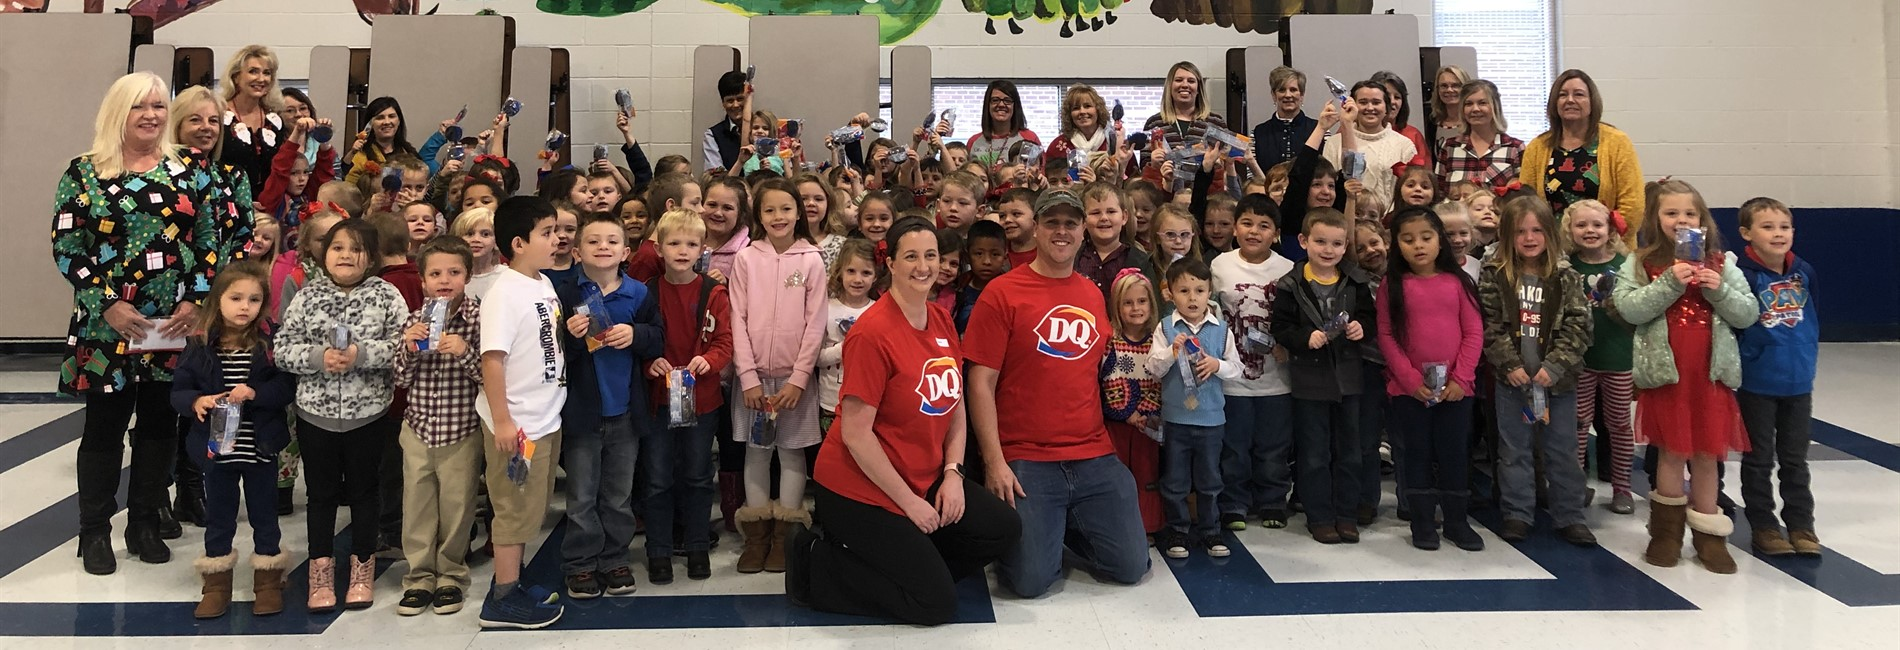 ECC celebrated 100% attendance with Dilly Bars from Albany Dairy Queen!